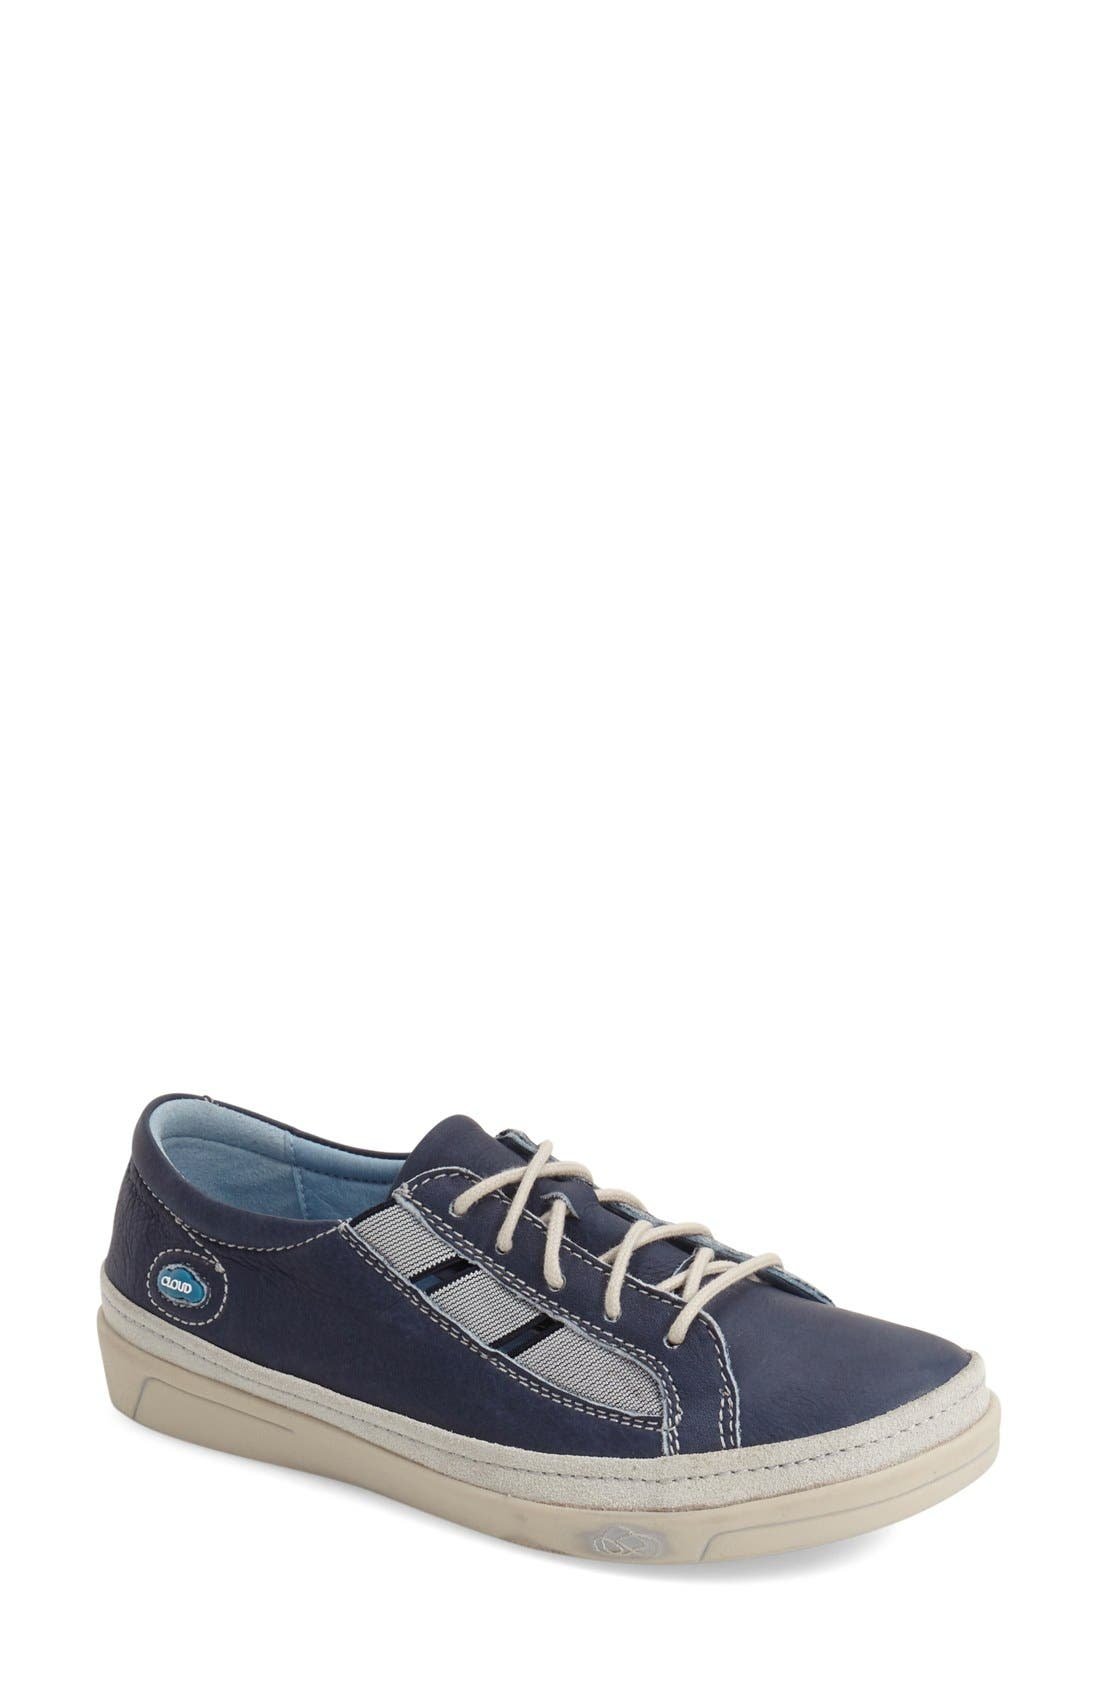 'Amazonas' Leather Sneaker, Main, color, BLUE LEATHER